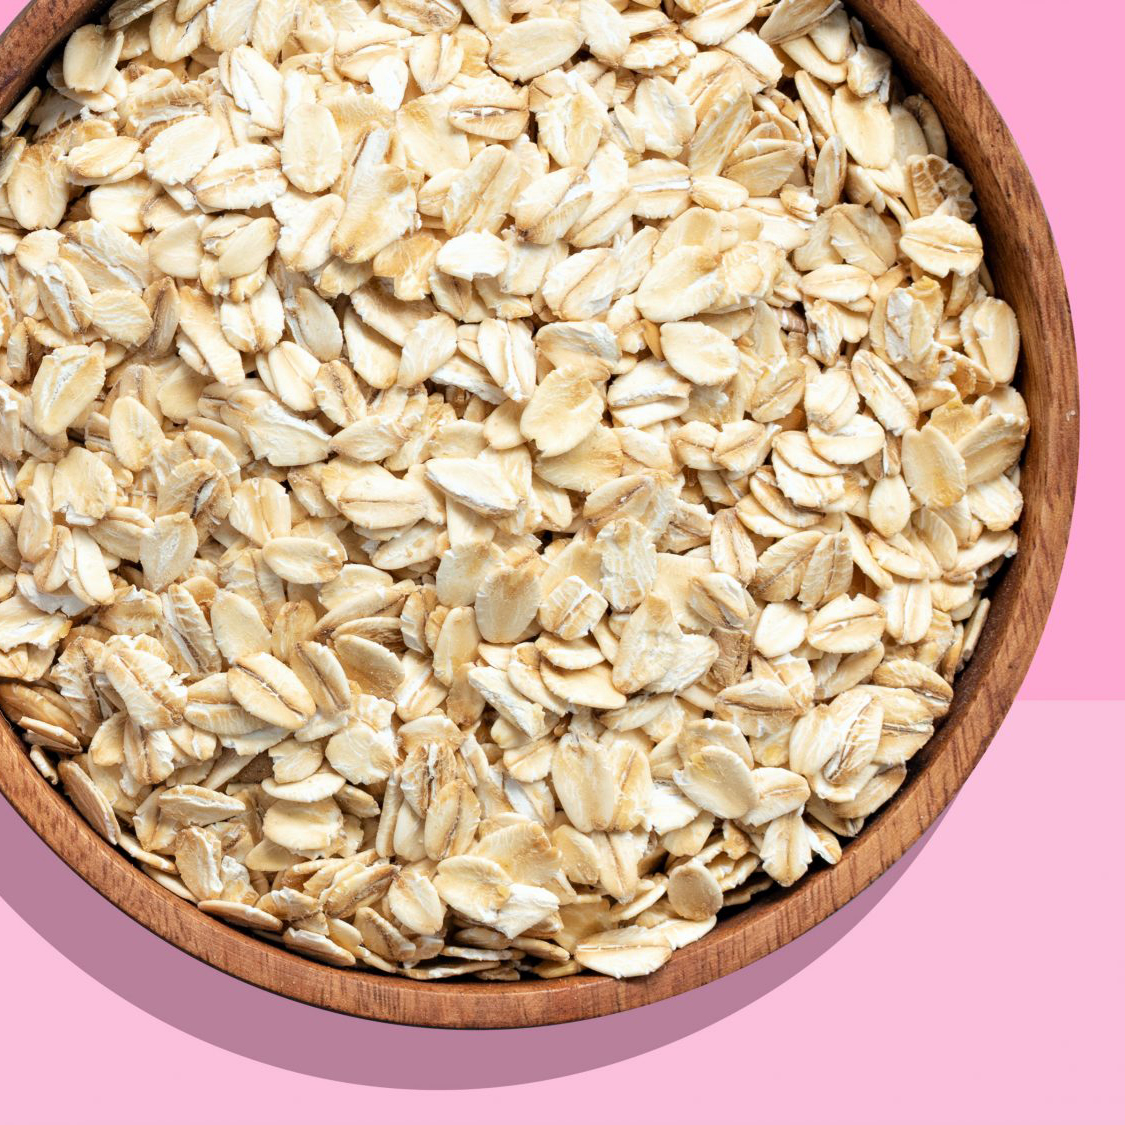 Types of grains - rolled oats (picture)